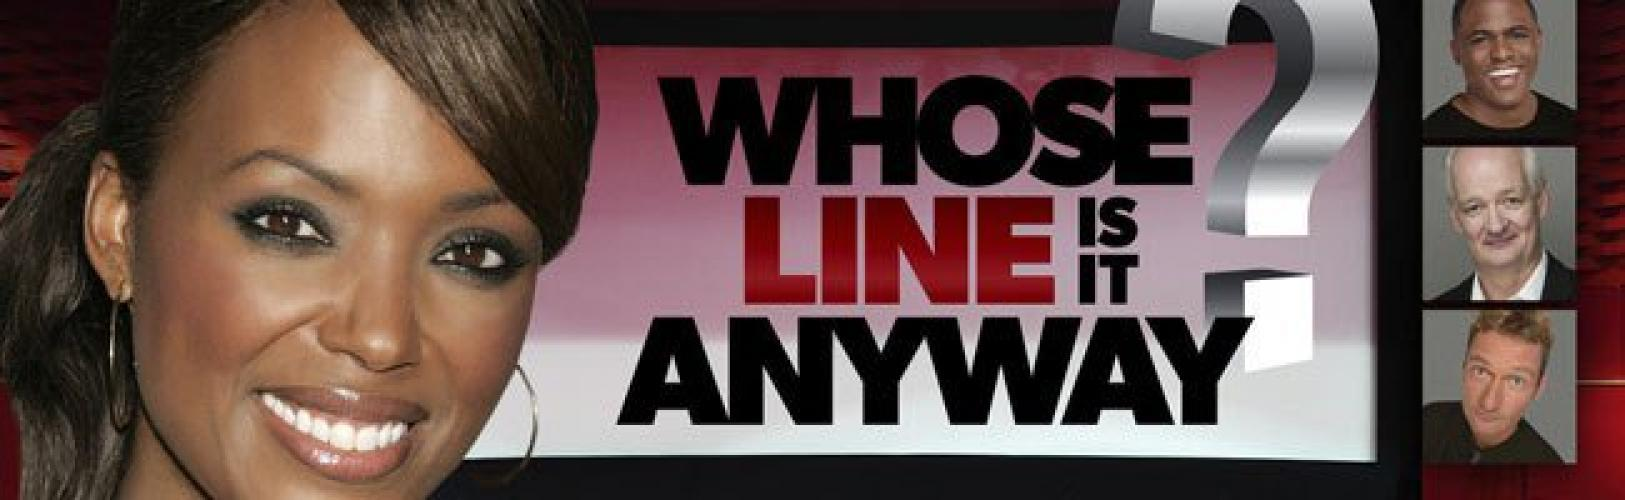 Whose Line Is It Anyway? next episode air date poster